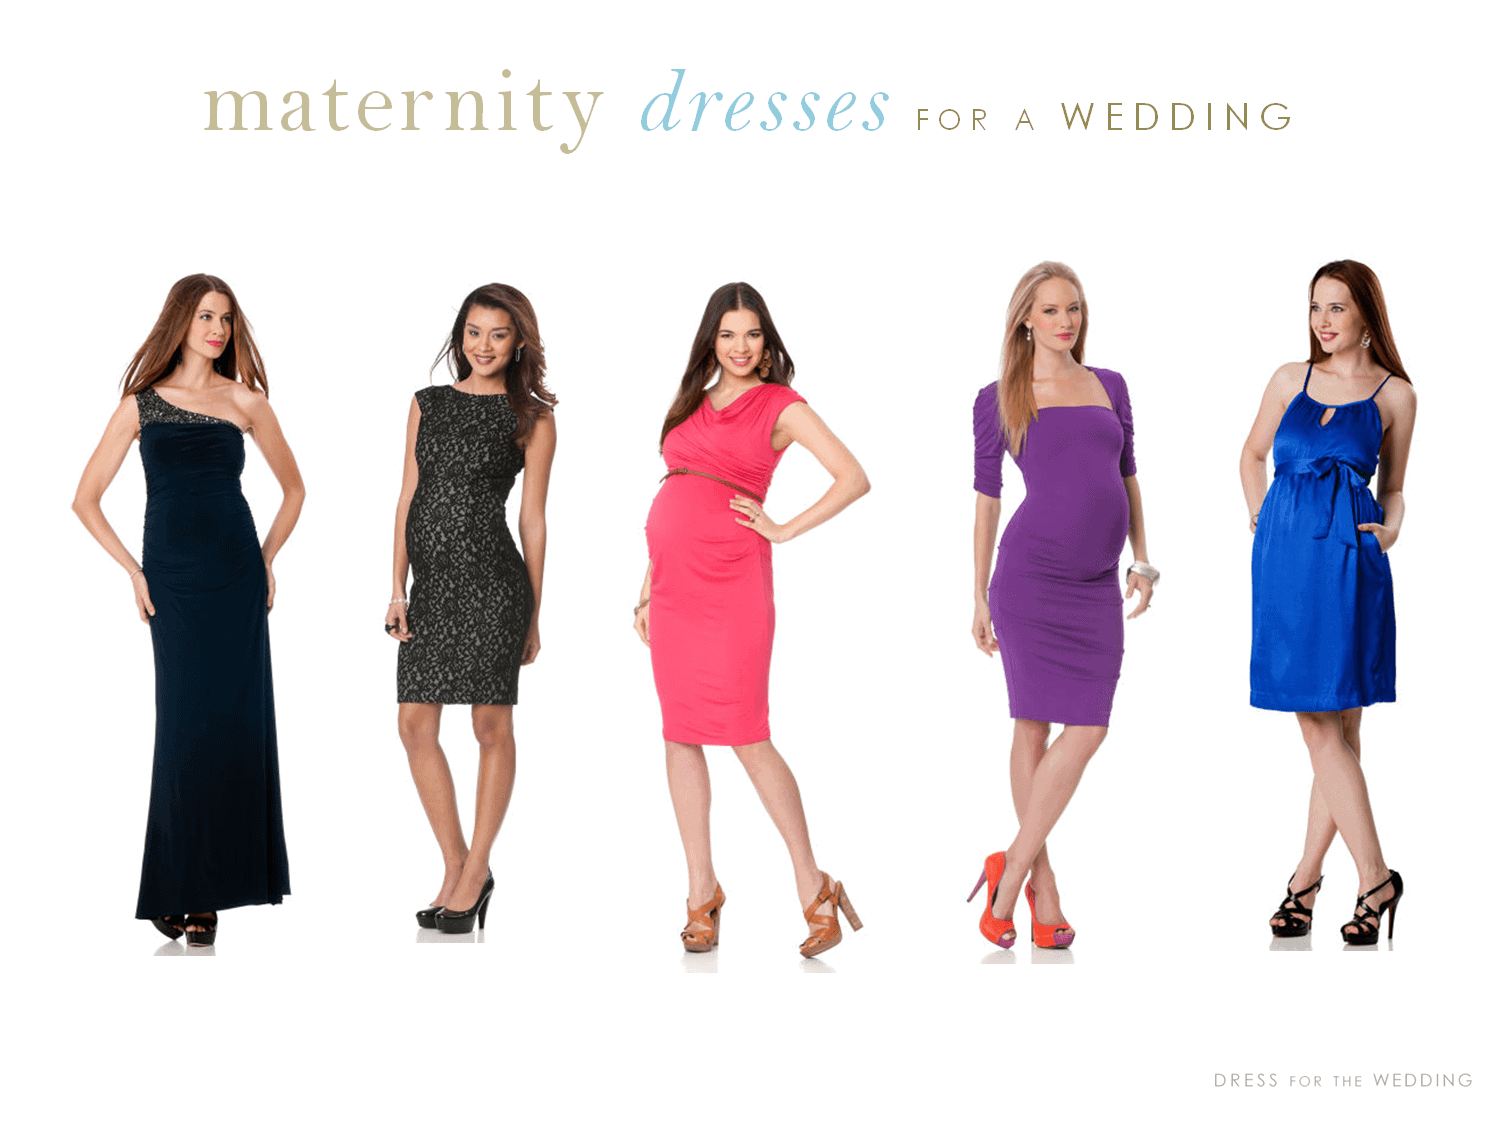 bdb7df41ee isabella oliver sequin asymmetric maternity dress maternity dresses for a  wedding guest big fashion show. asos maternity bodycon dress in stripe and  colour ...